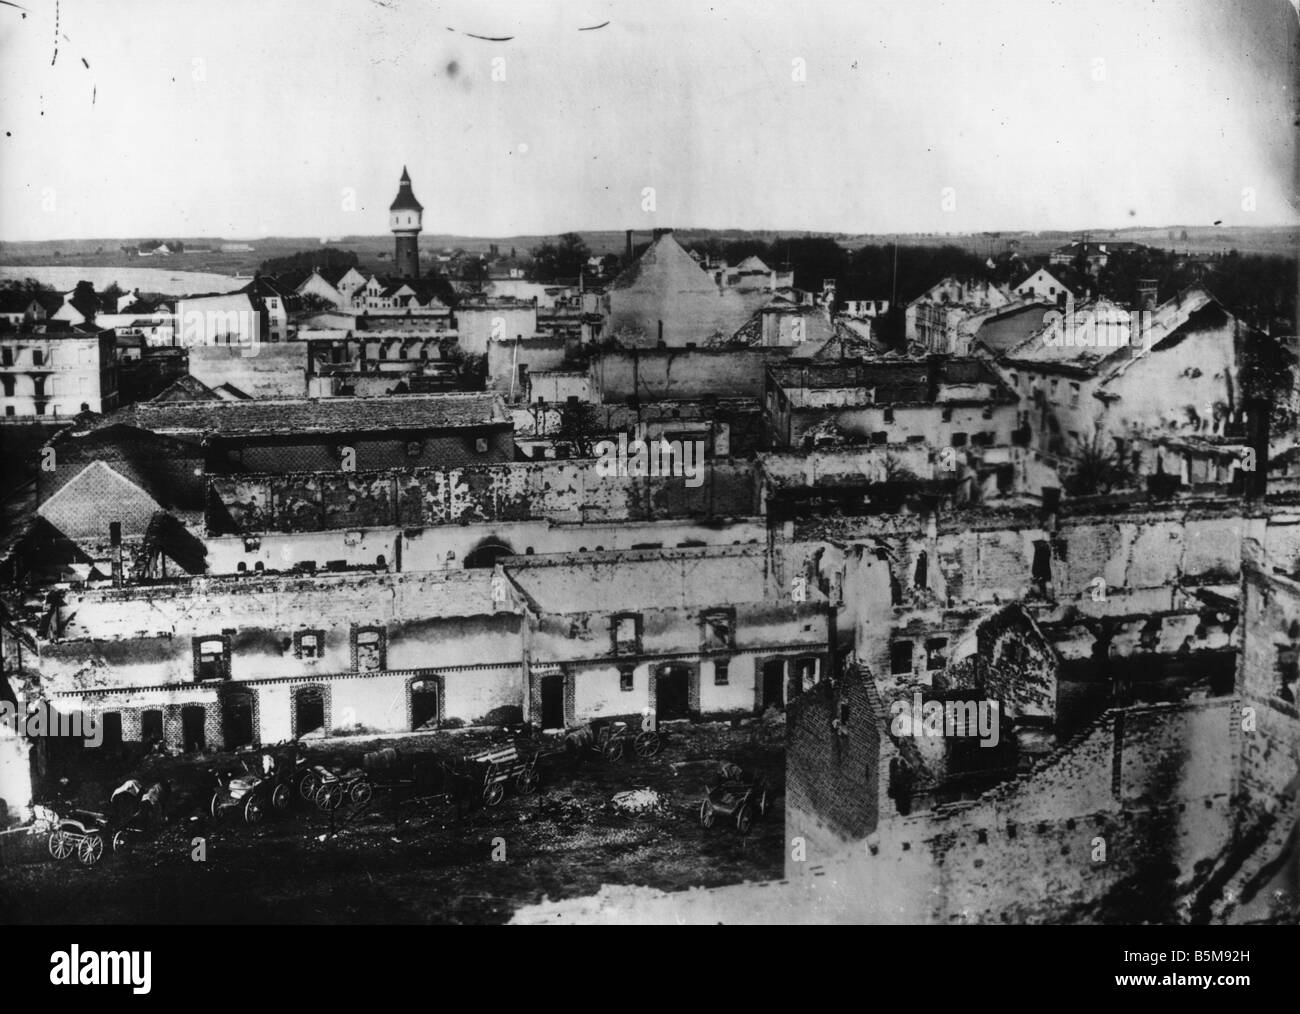 2 G55 O1 1914 15 WWI Destruction in Ortelsburg Photo History WWI Eastern Front View of Ortelsburg East Prussia following - Stock Image